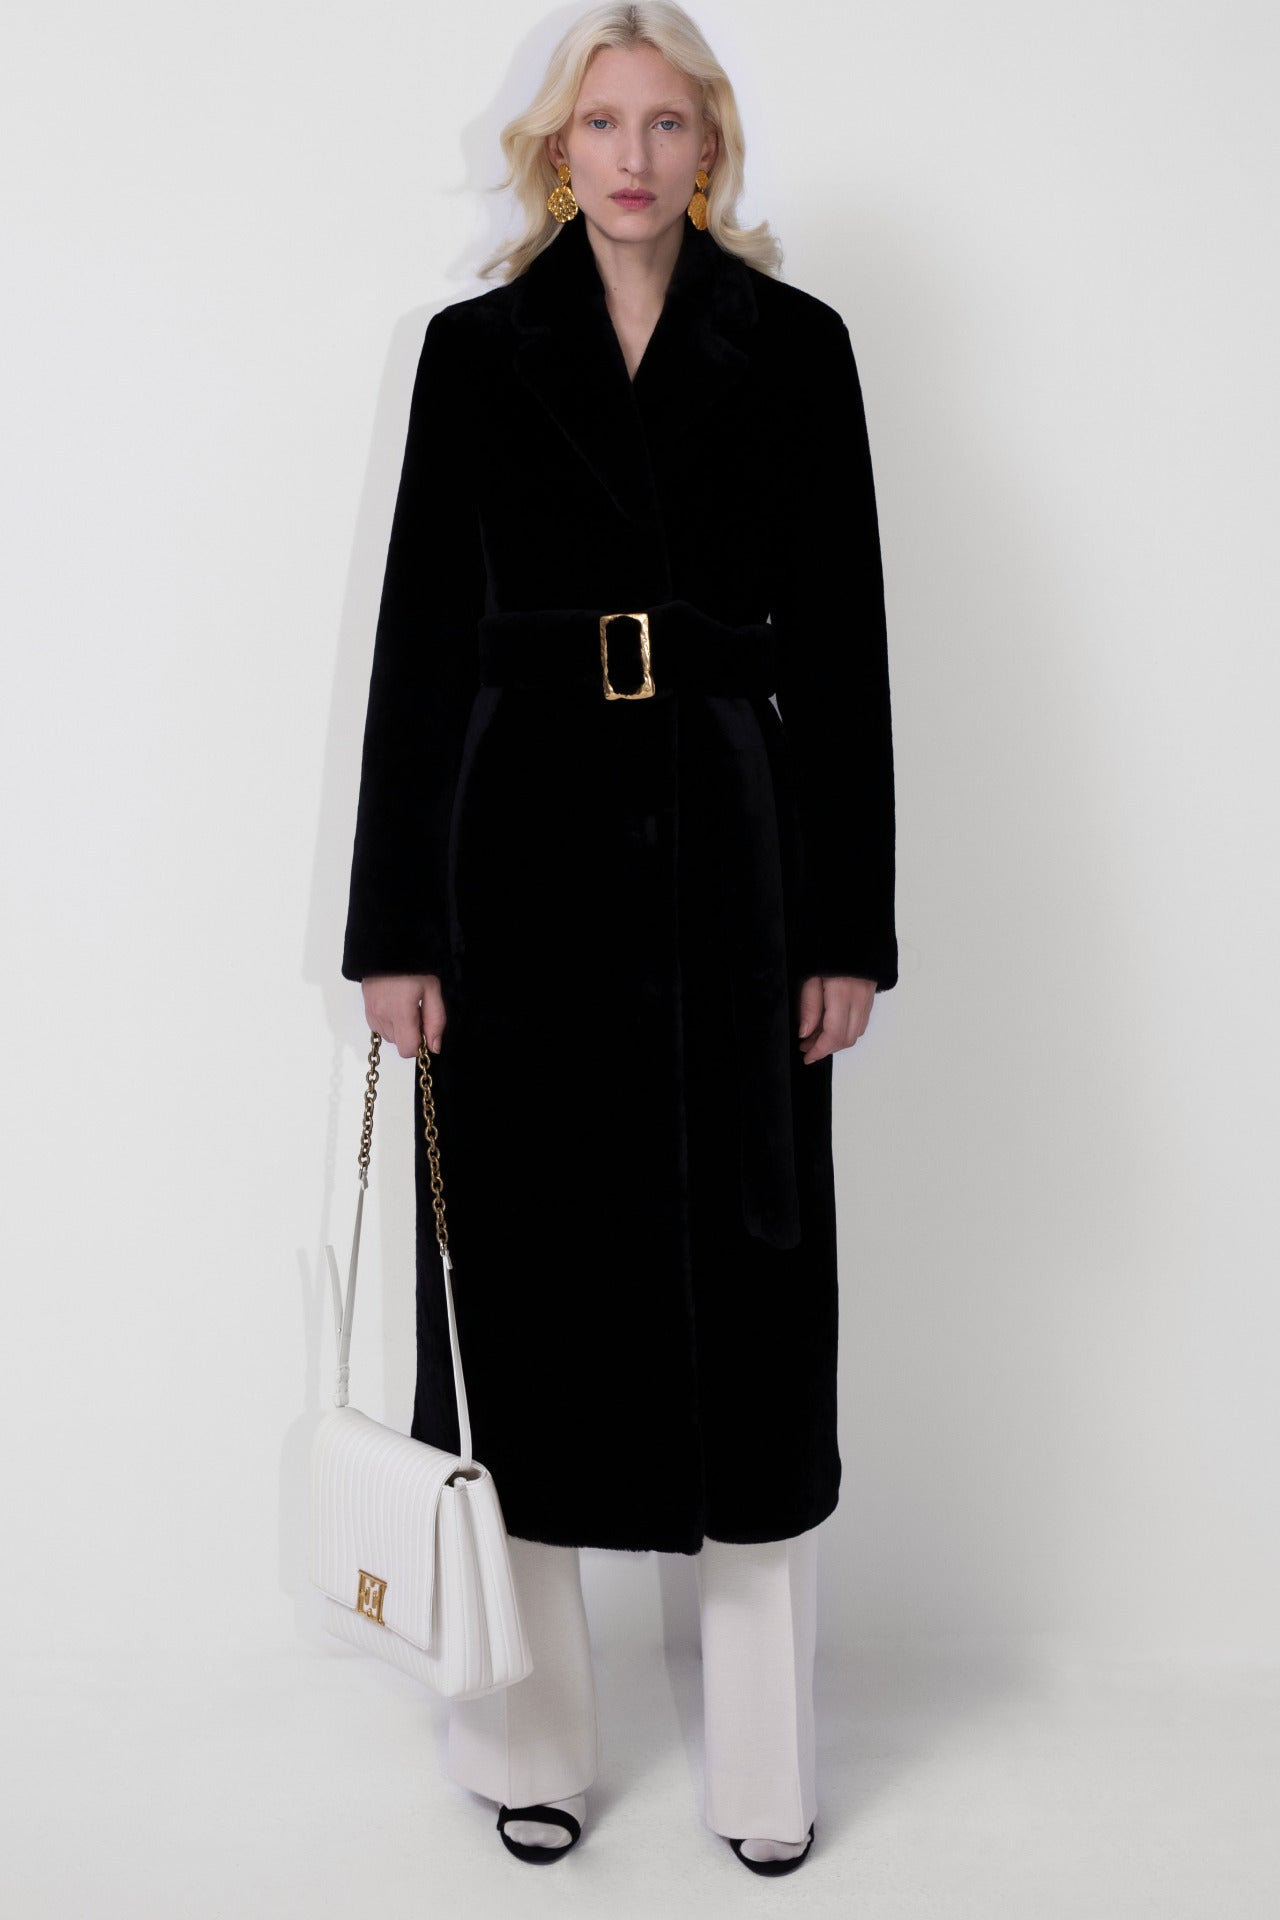 ESCADA Fall/Winter 2020 Black classic coat with golden buckle